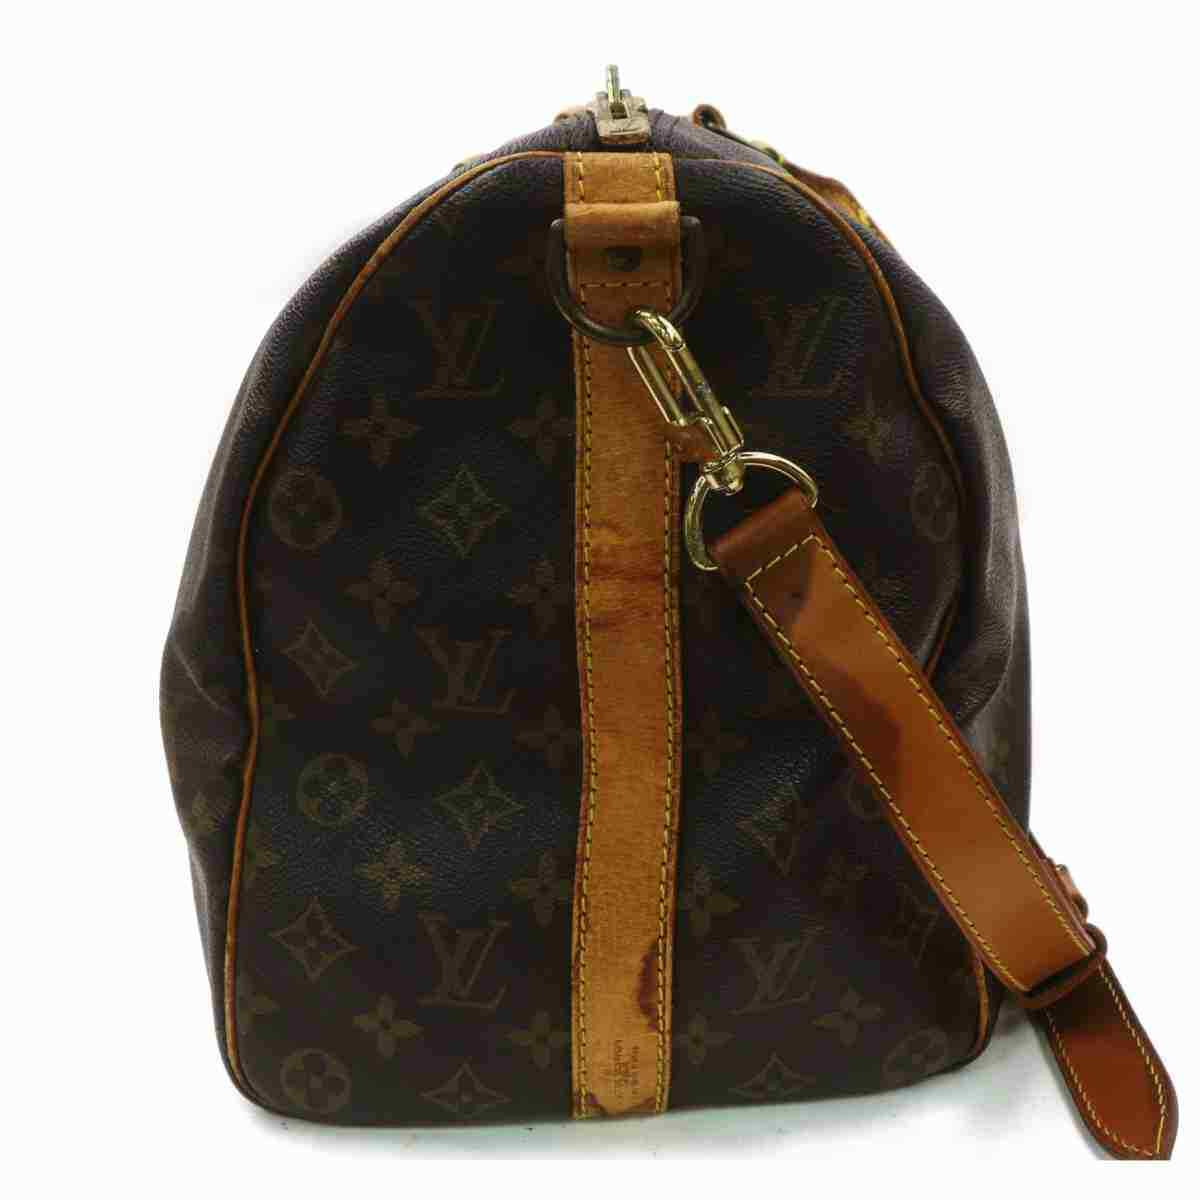 Louis Vuitton Keepall Bandouliere 45 M41418 Brown Monogram Boston Bag 11481